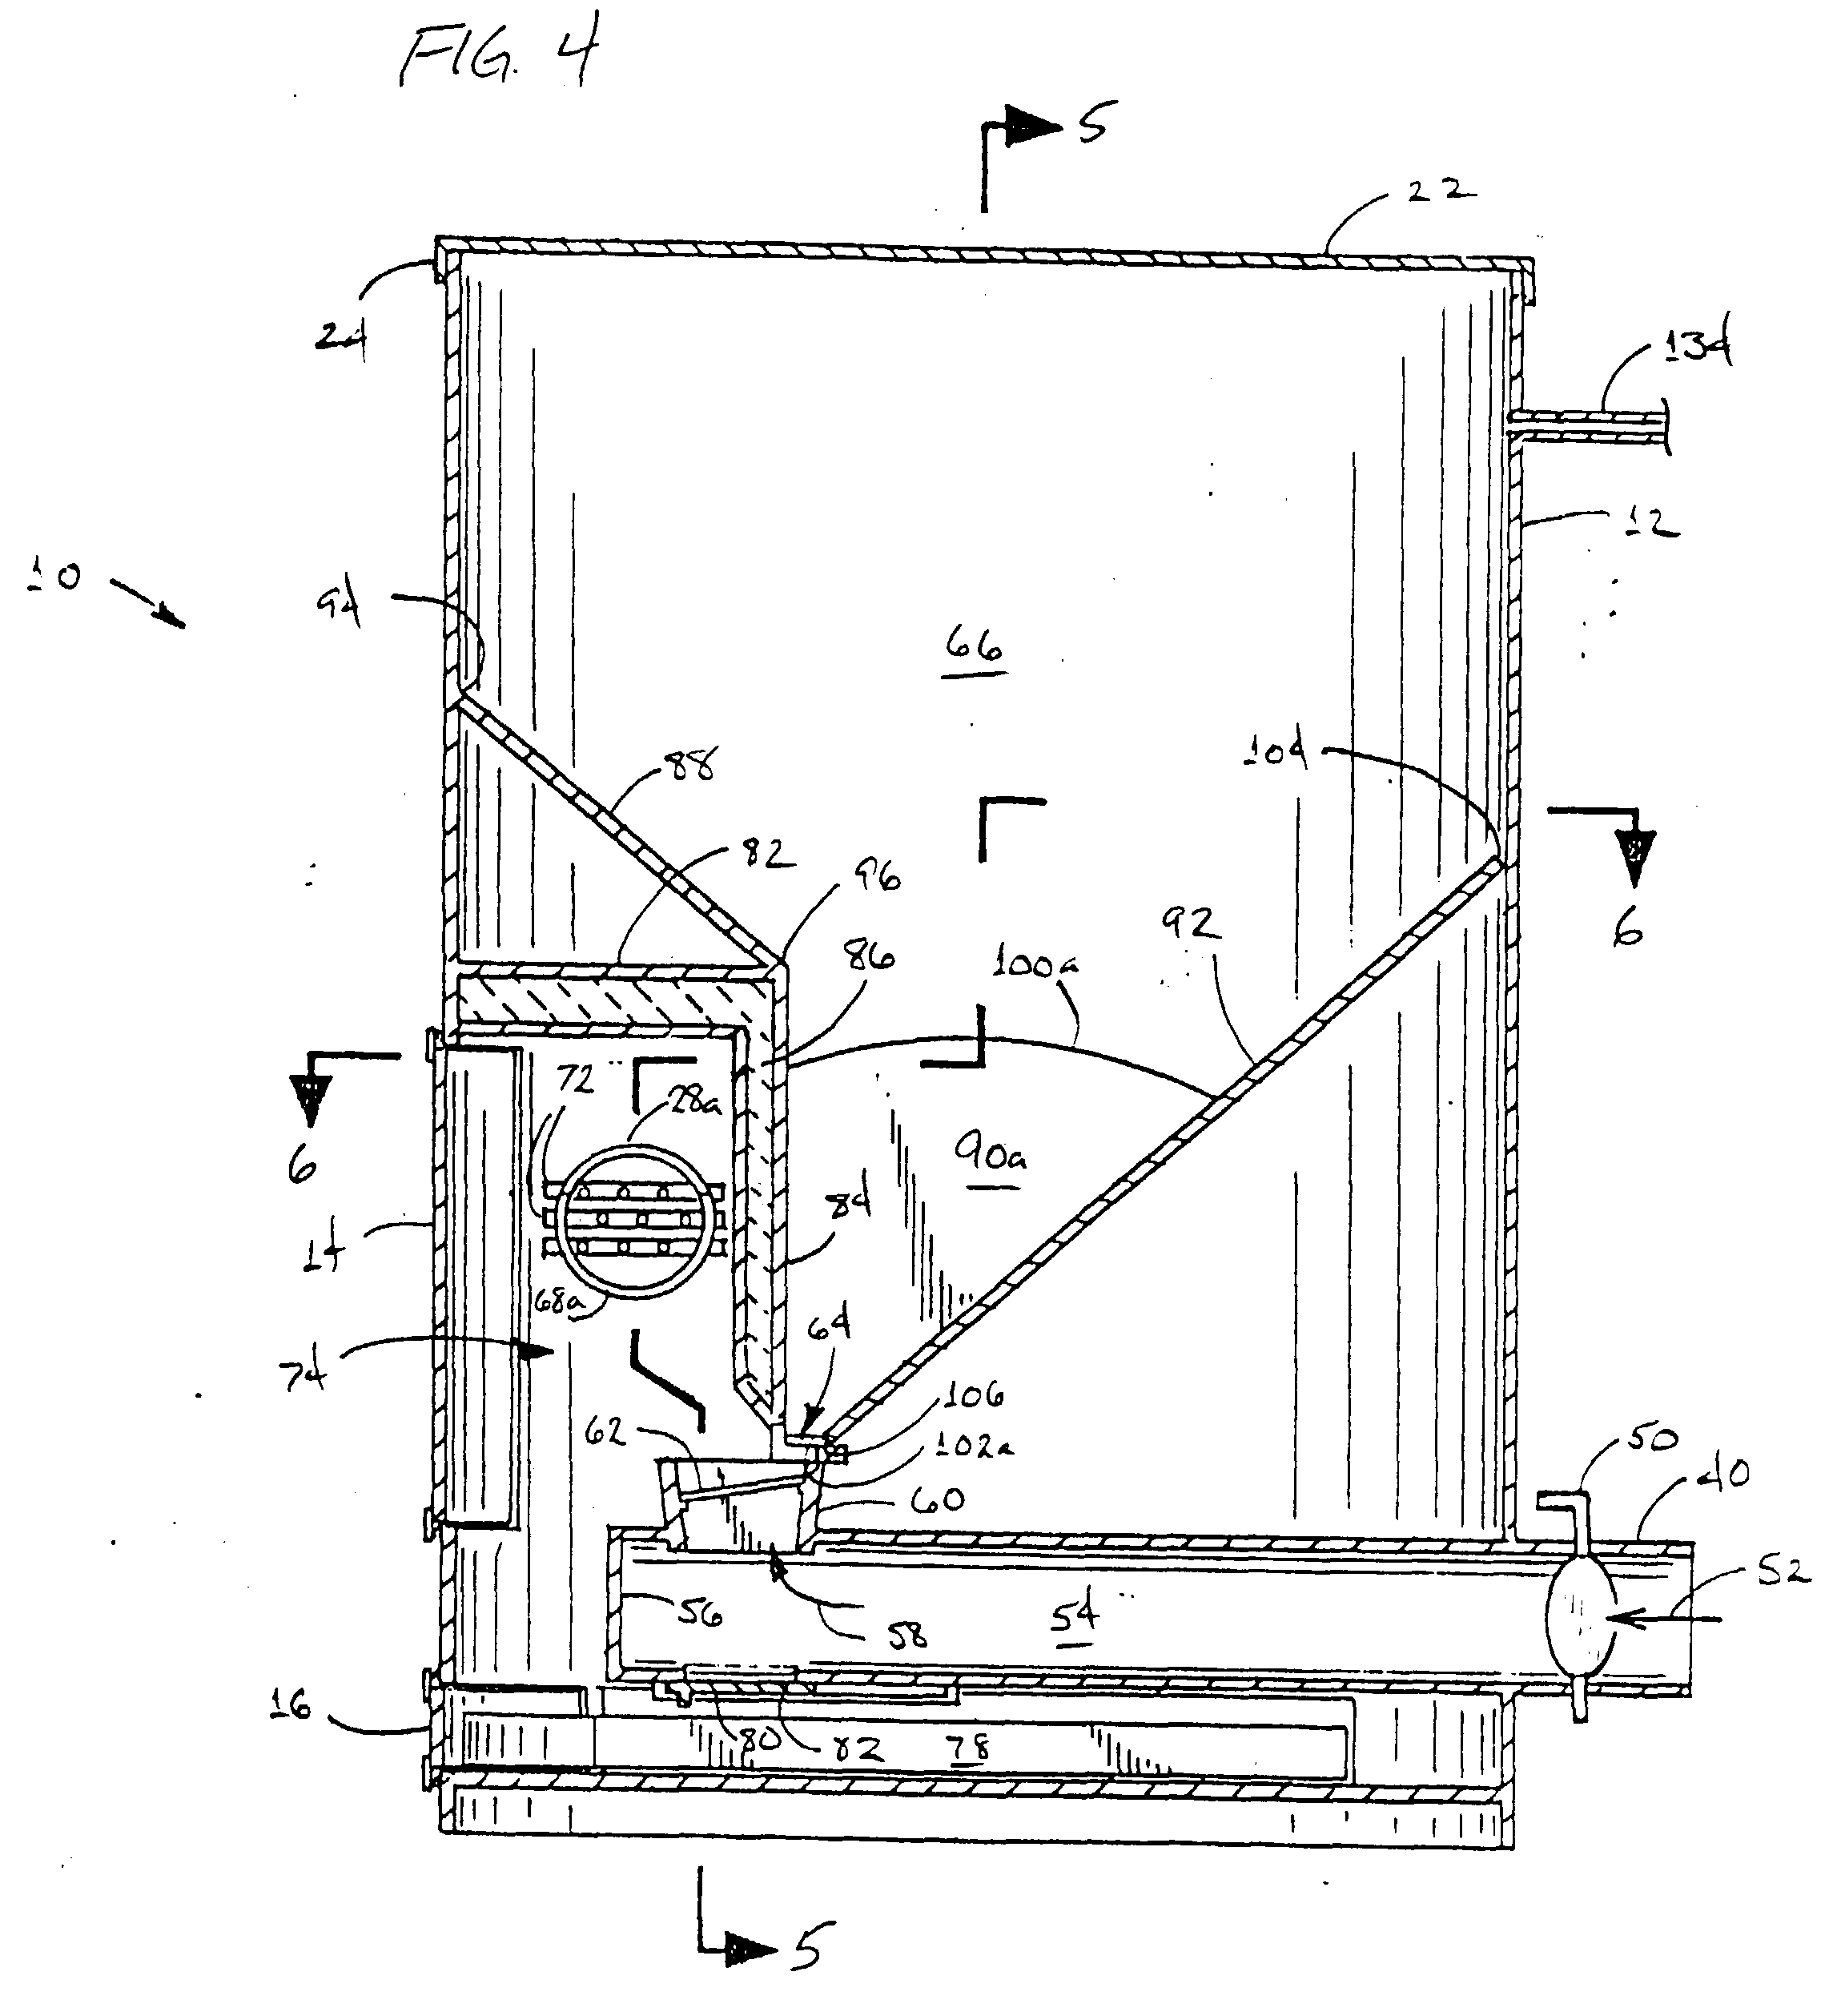 Gravity Feed Natural Draft Stove Ii Patent Ep0854324a2 - Natural Draft Pellet Stove - Google